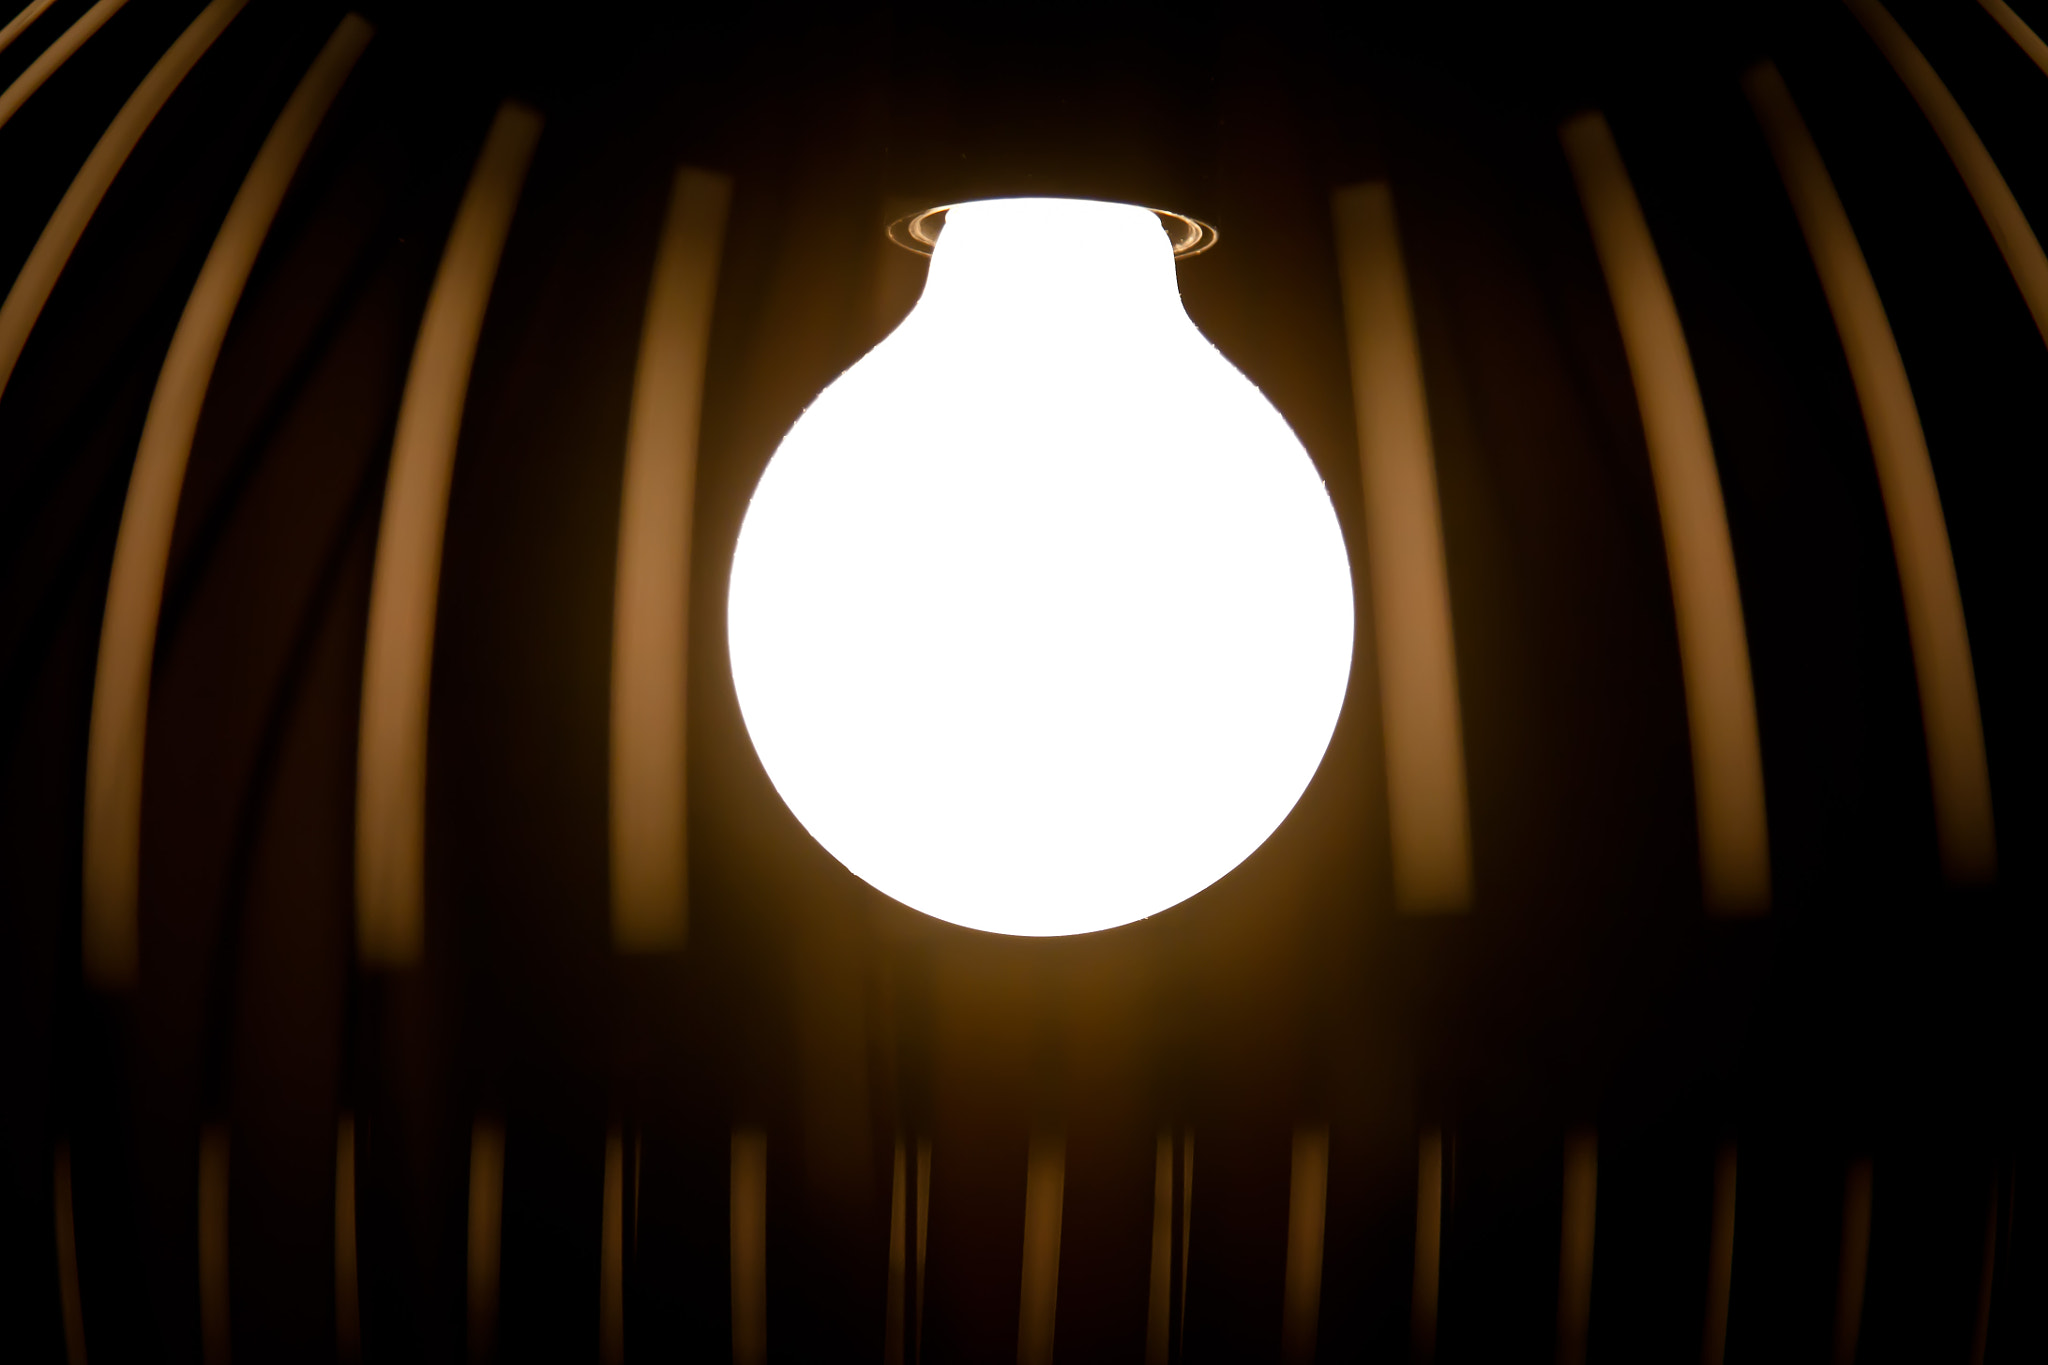 Photograph Bulb by Jacob Ussing on 500px